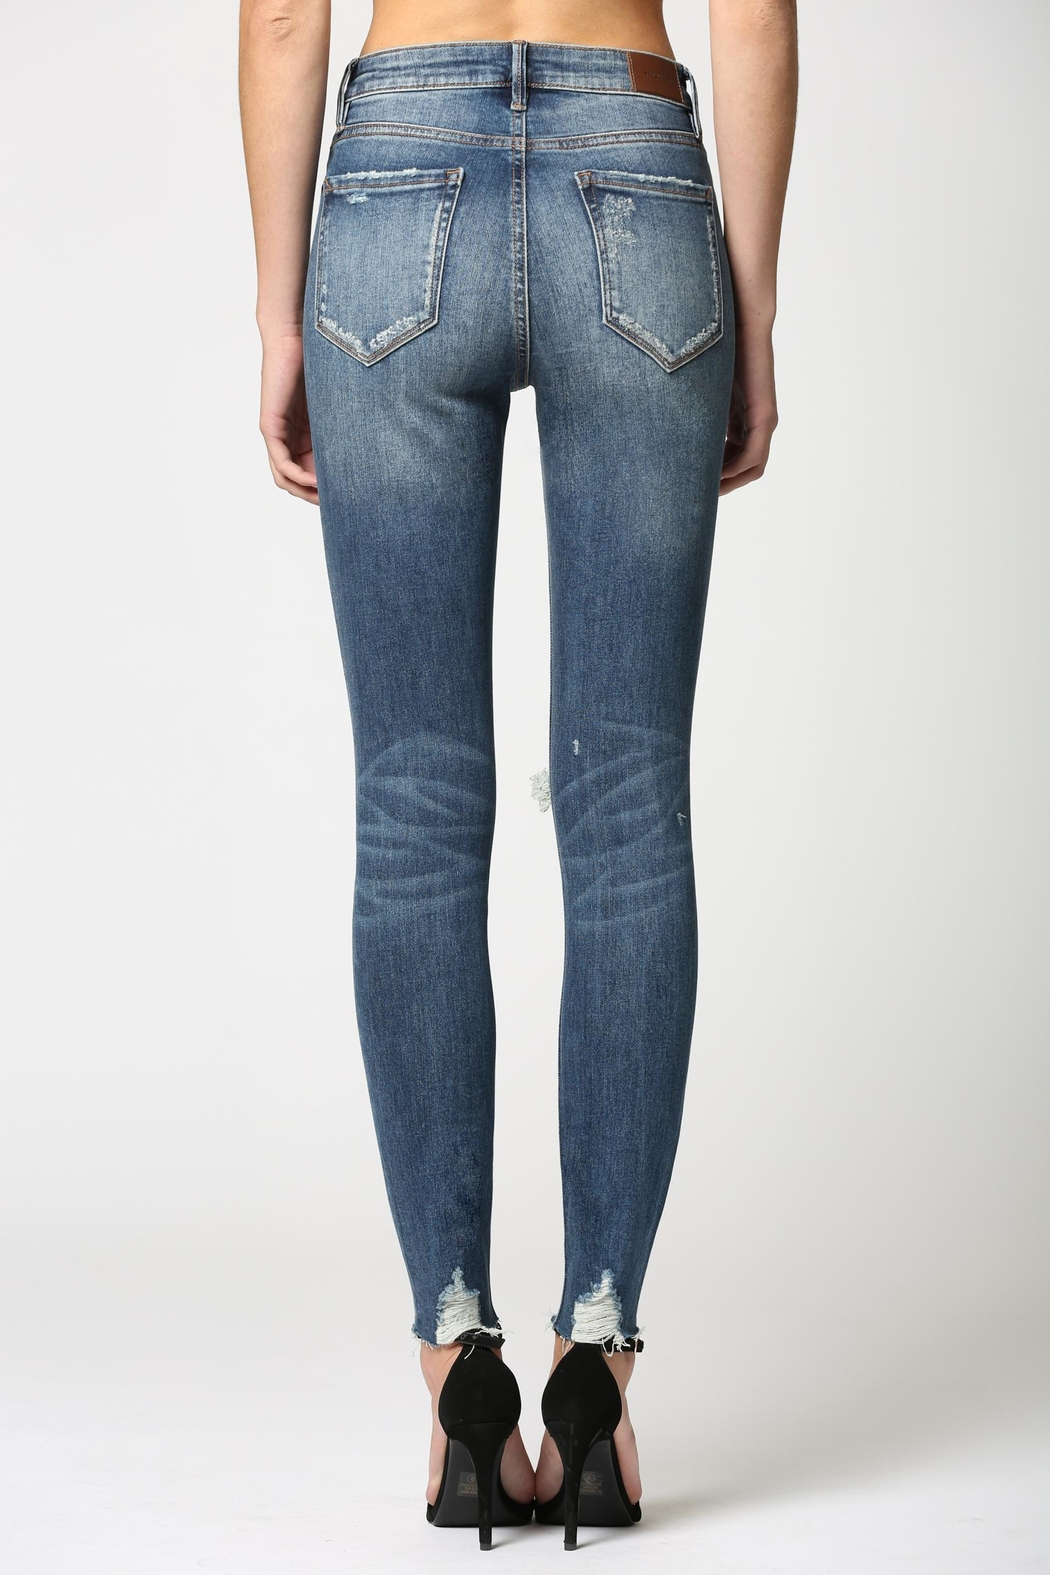 Hidden Jeans High Rise Skinny Jean - Side Cropped Image